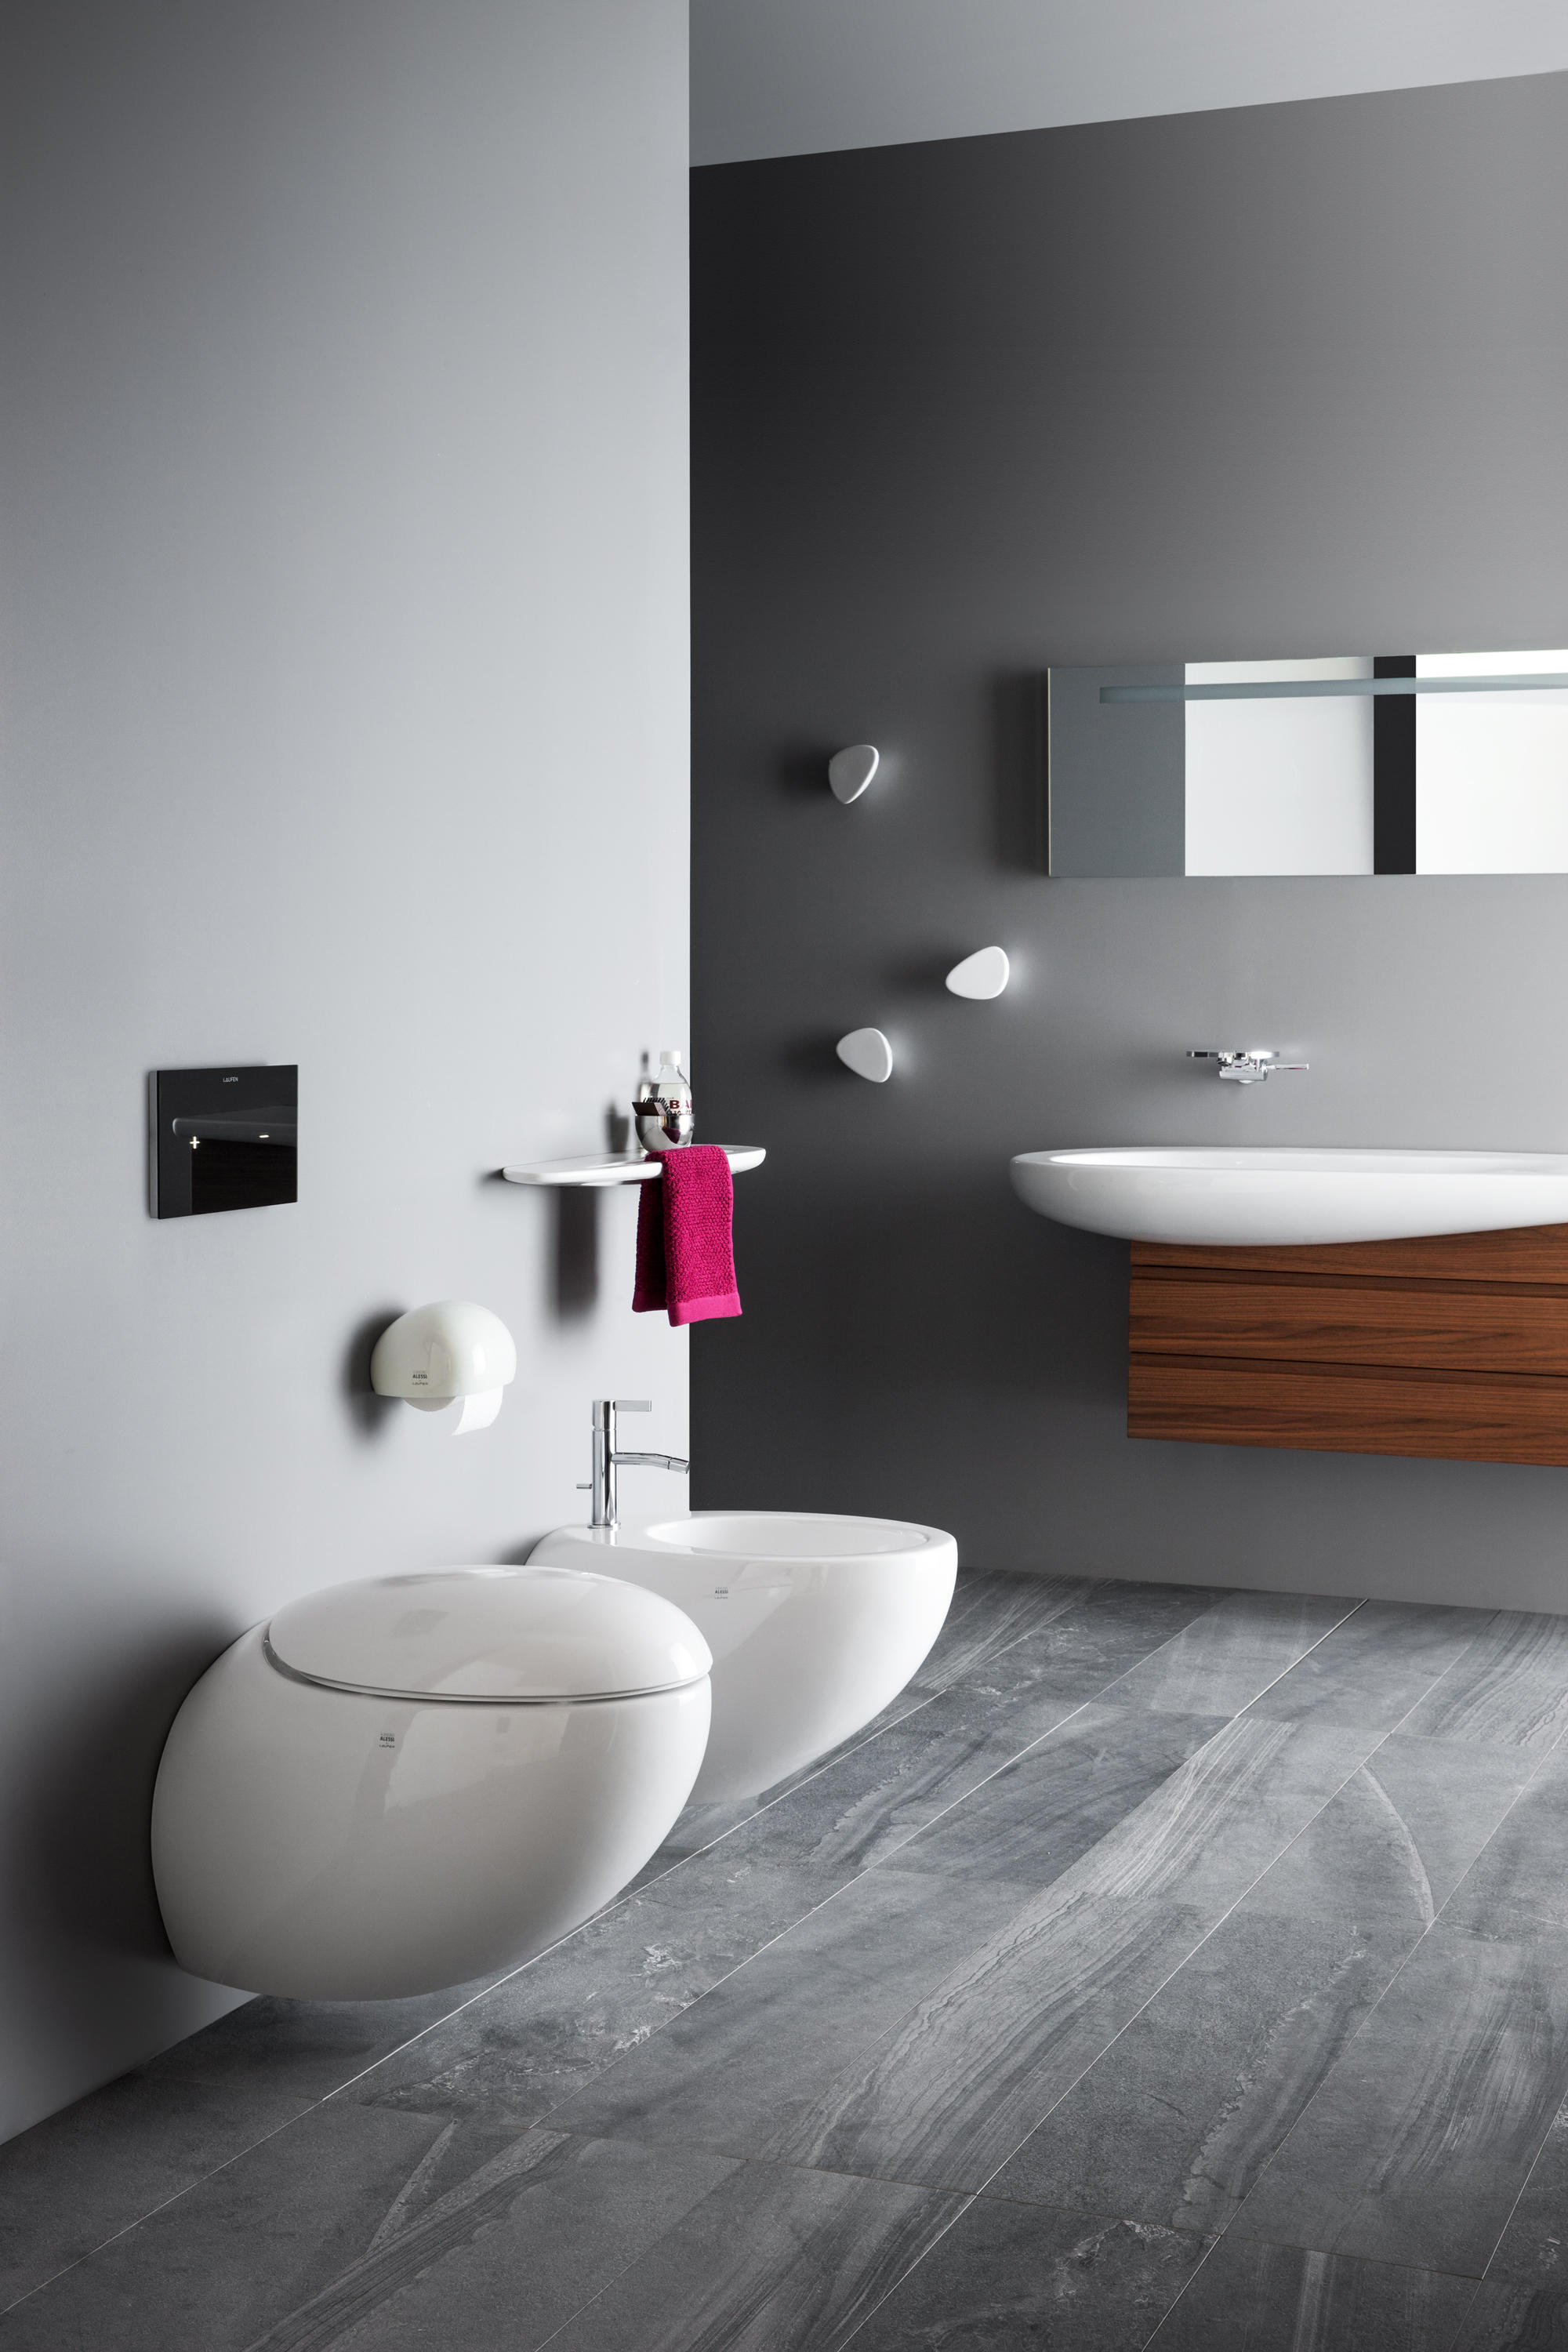 ilbagnoalessi one floorstanding wc toilets from laufen. Black Bedroom Furniture Sets. Home Design Ideas